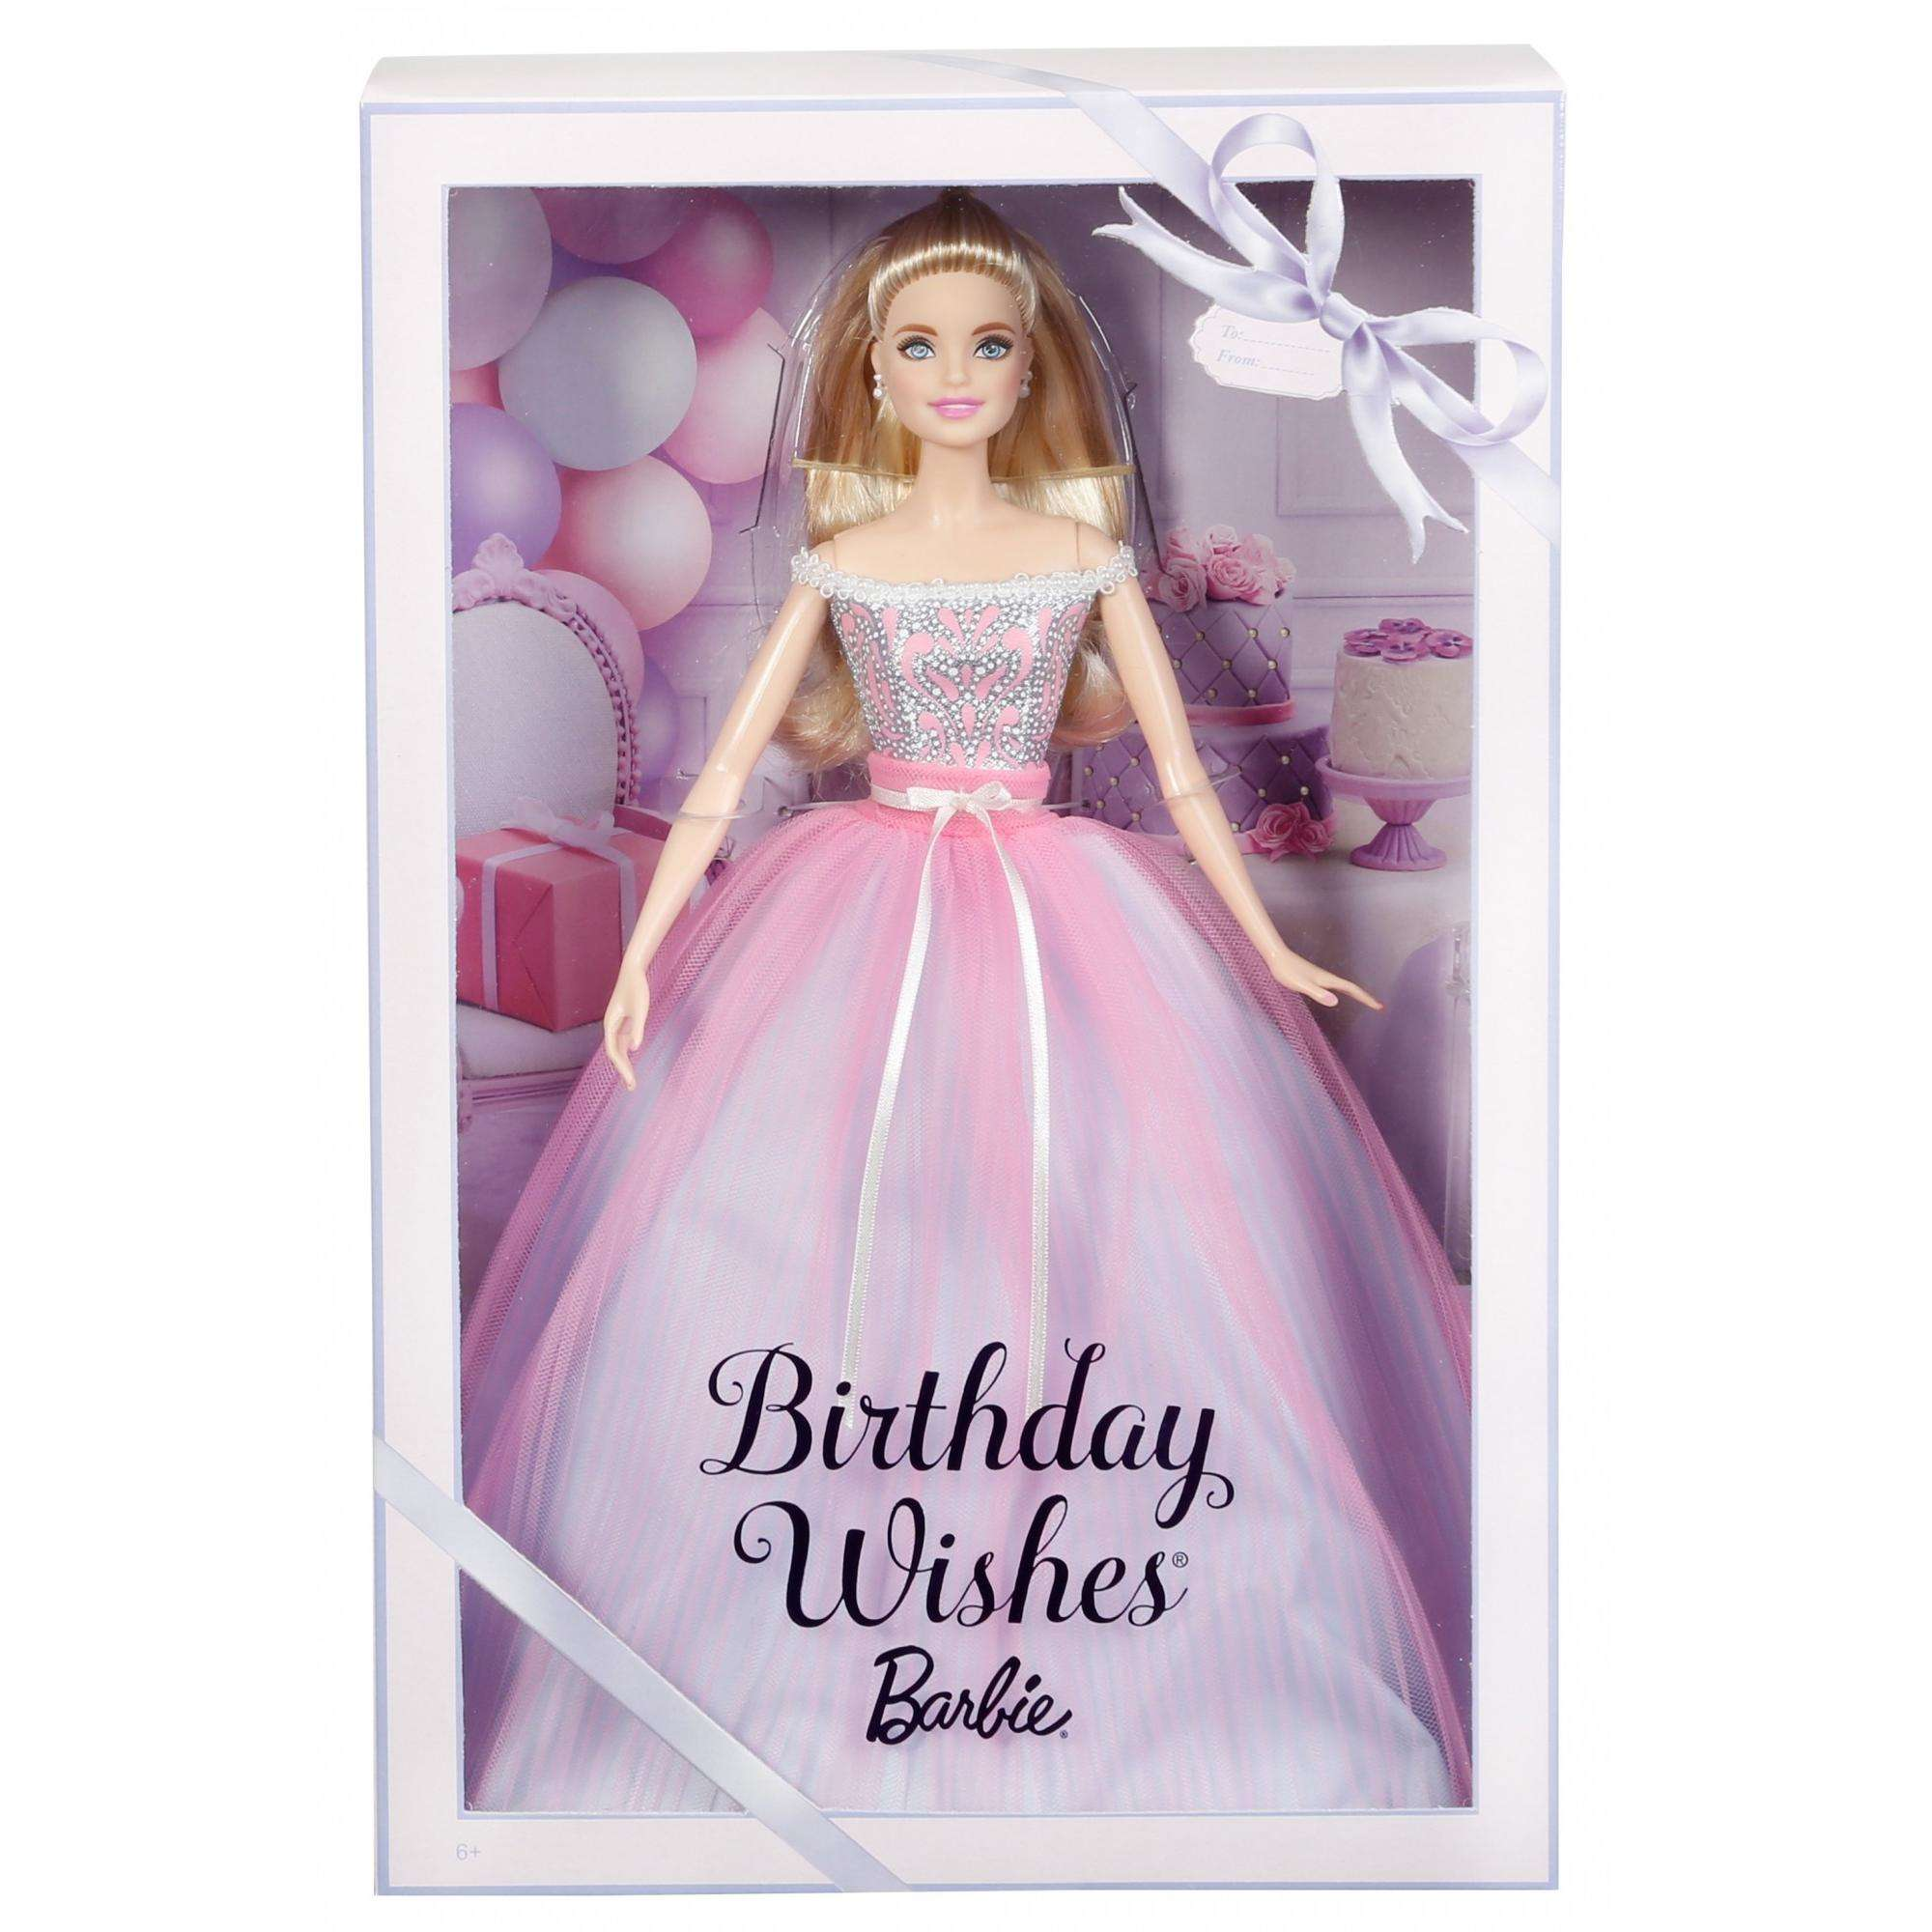 Birthday Wishes Barbie Doll Blonde Hair Wearing Pink Party Dress